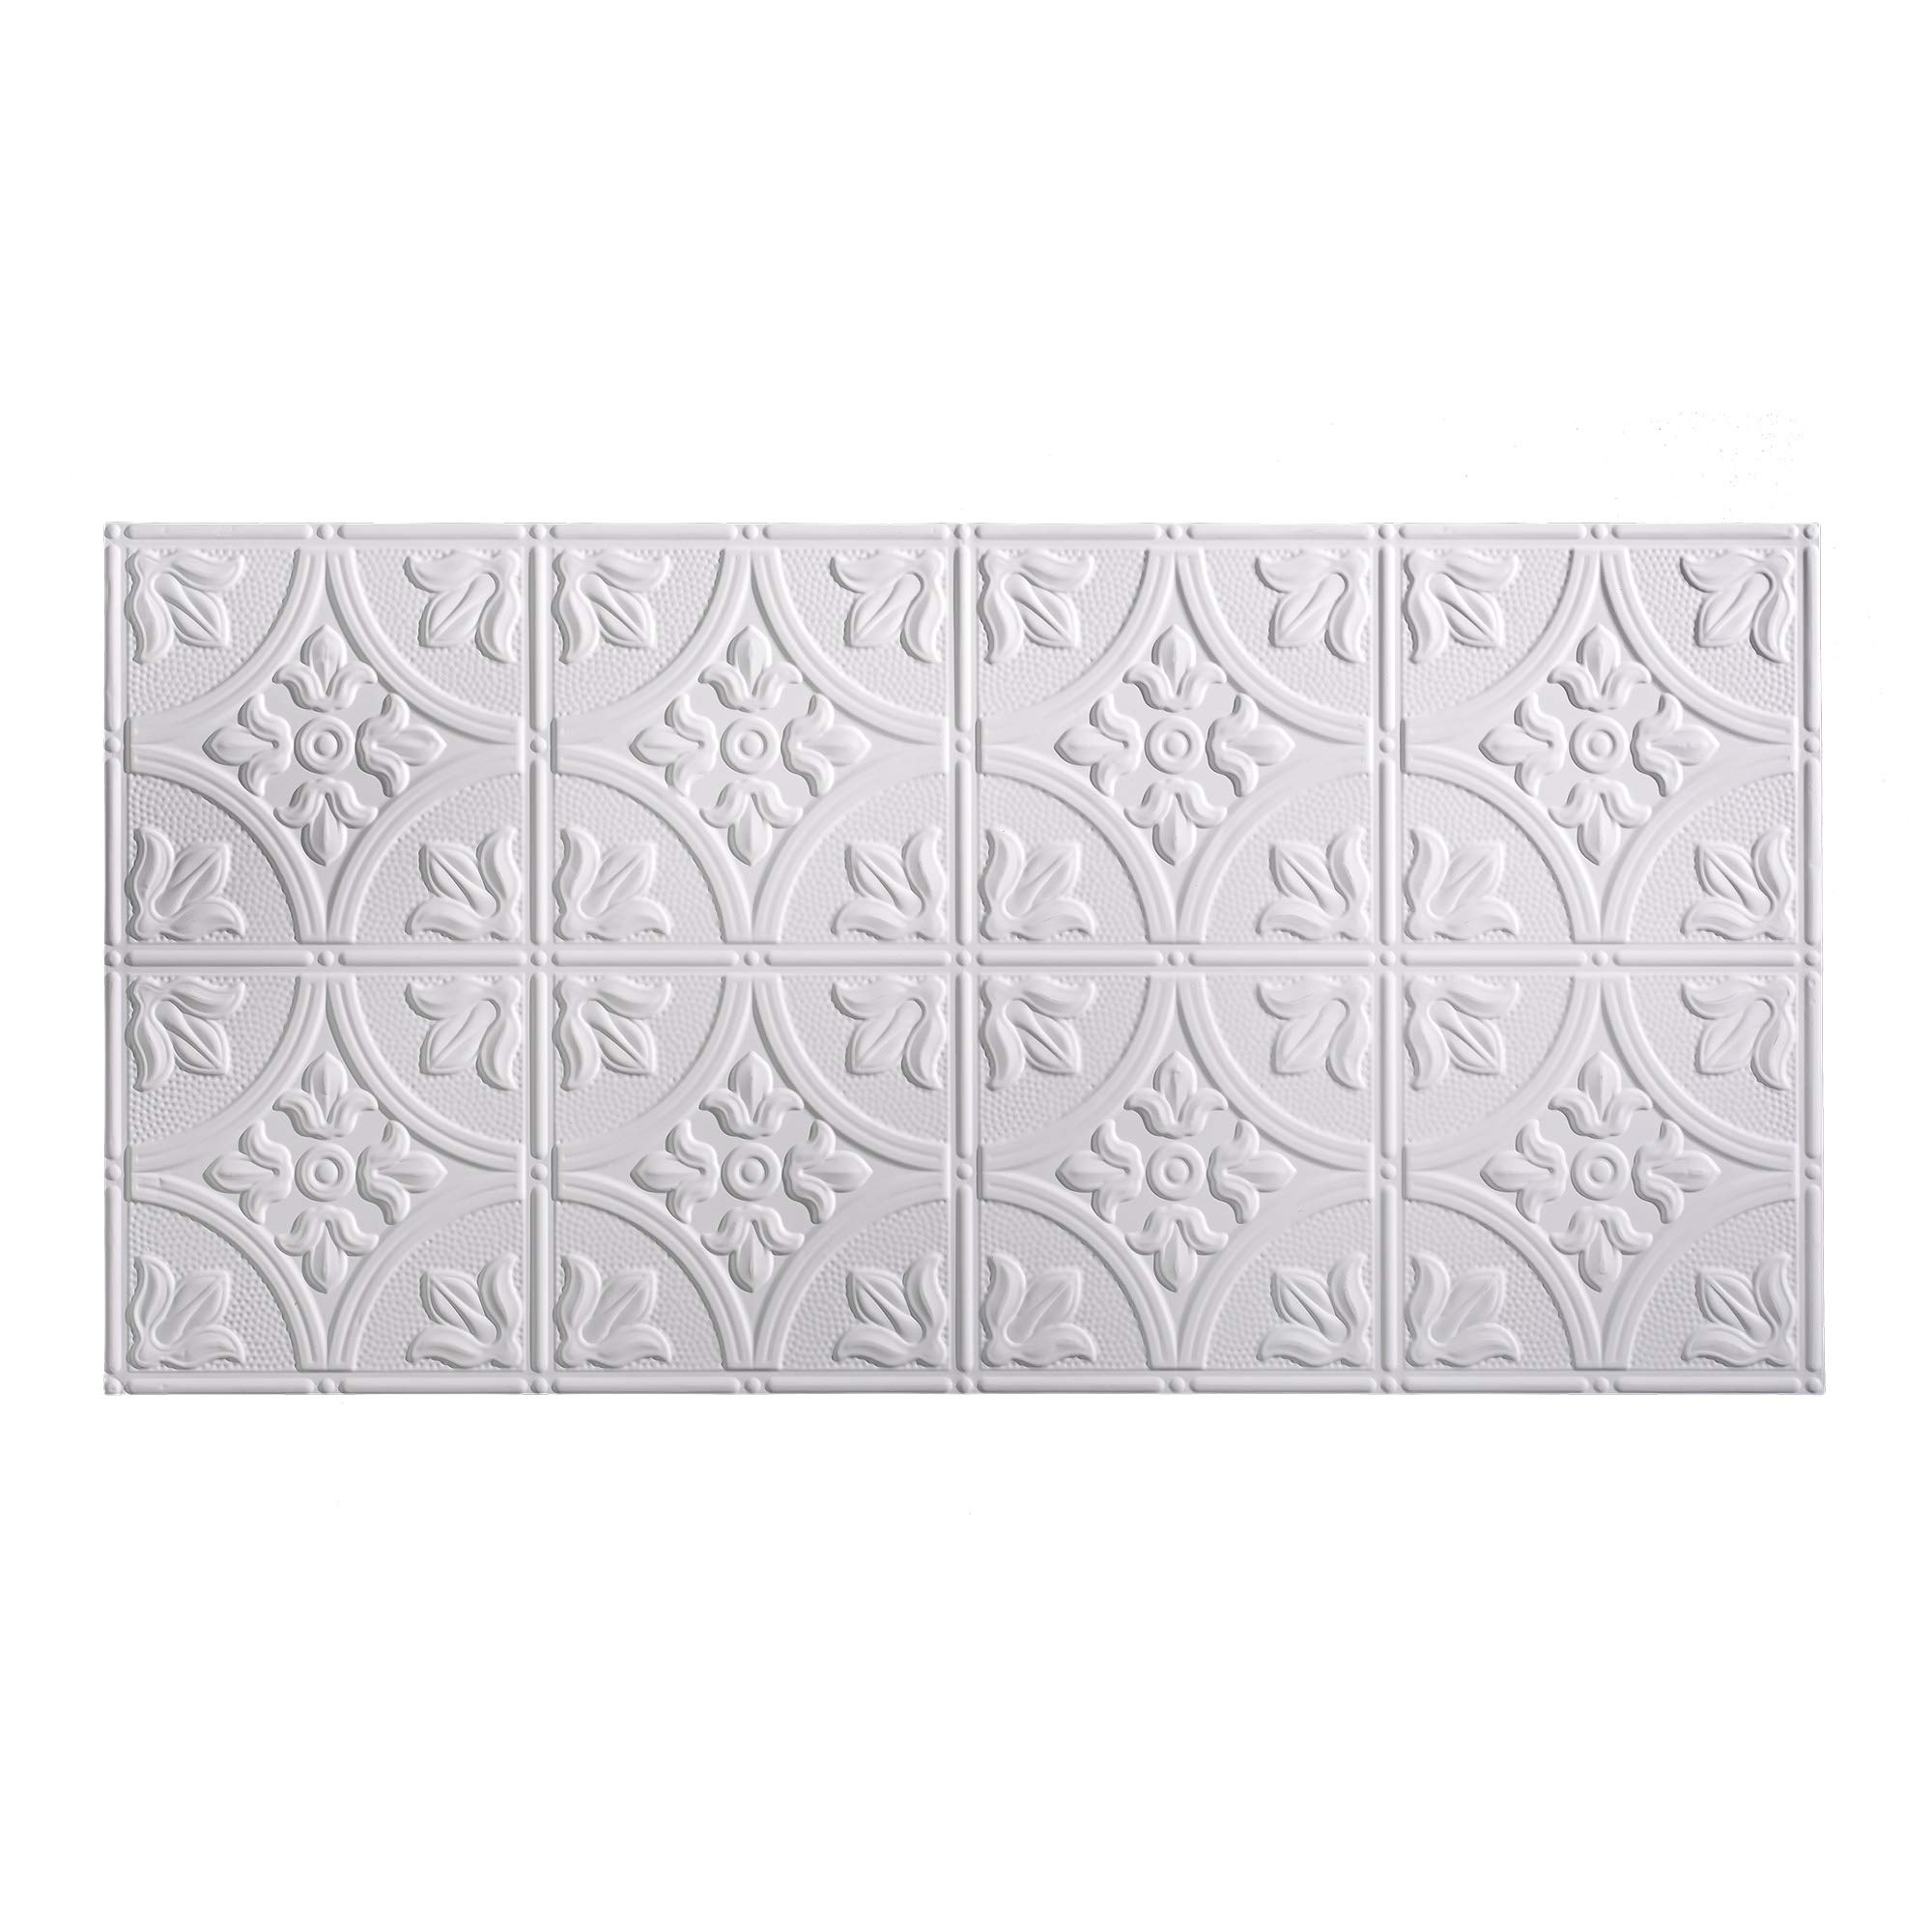 Fasade Easy Installation Traditional 2 Matte White Glue Up Ceiling Tile/Ceiling Panel (2' x 4' Panel)